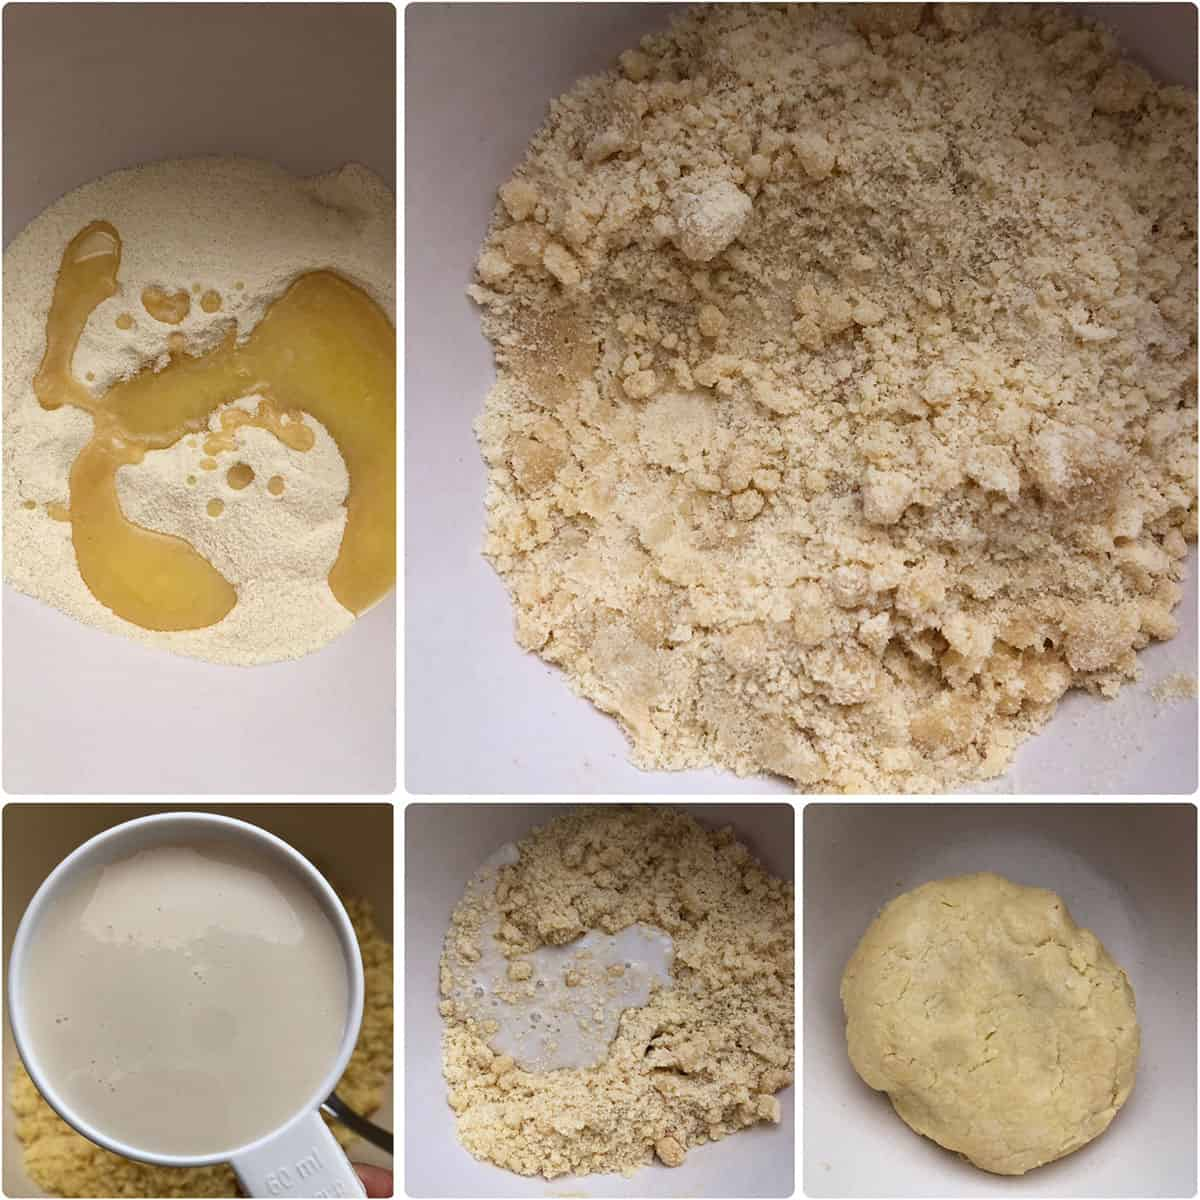 Melted butter and milk added to dry ingredients to form a smooth dough